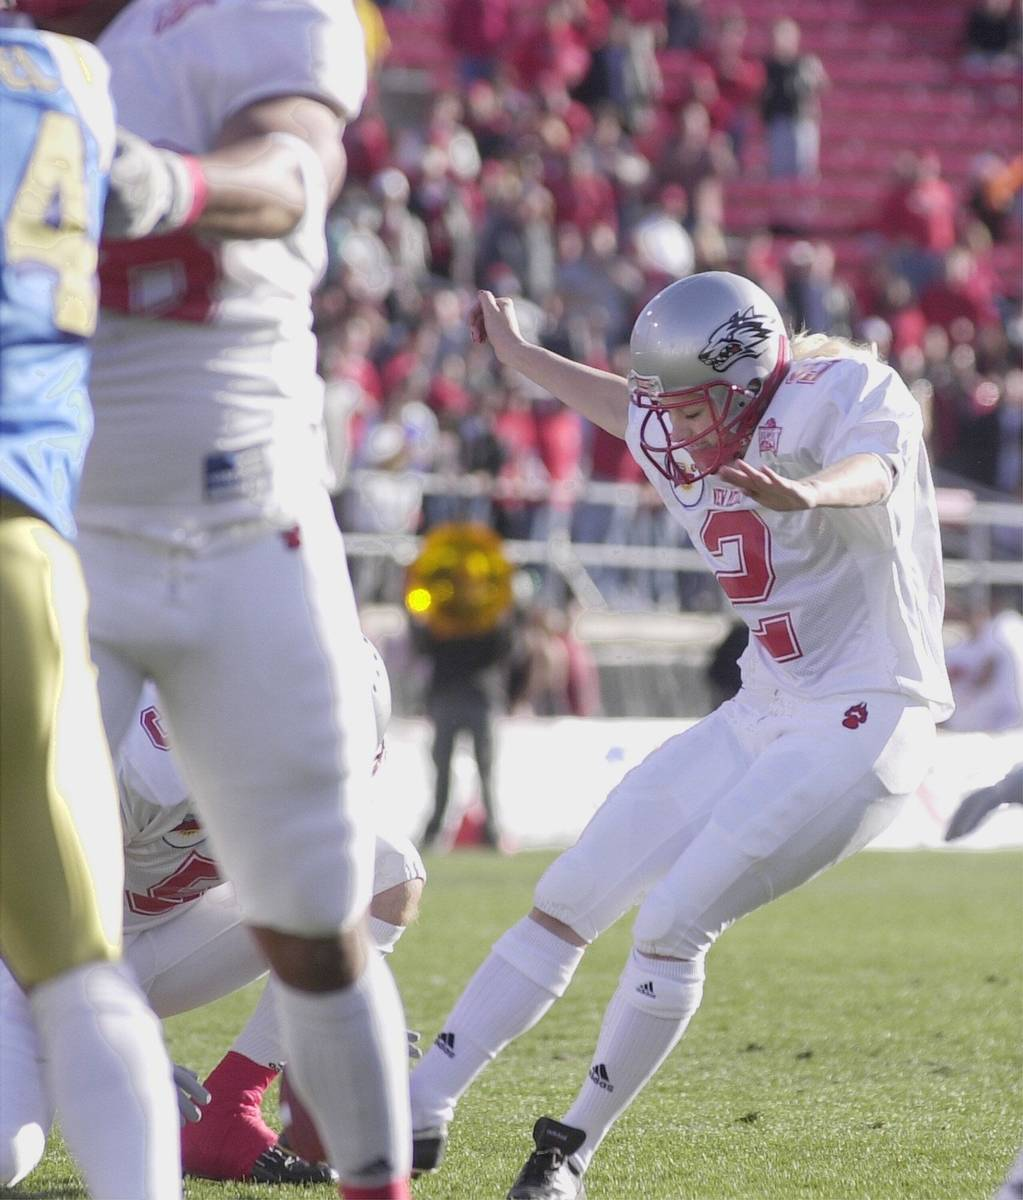 Katie Hnida, a place-kicker for New Mexico, attempts an extra point during the first quarter We ...